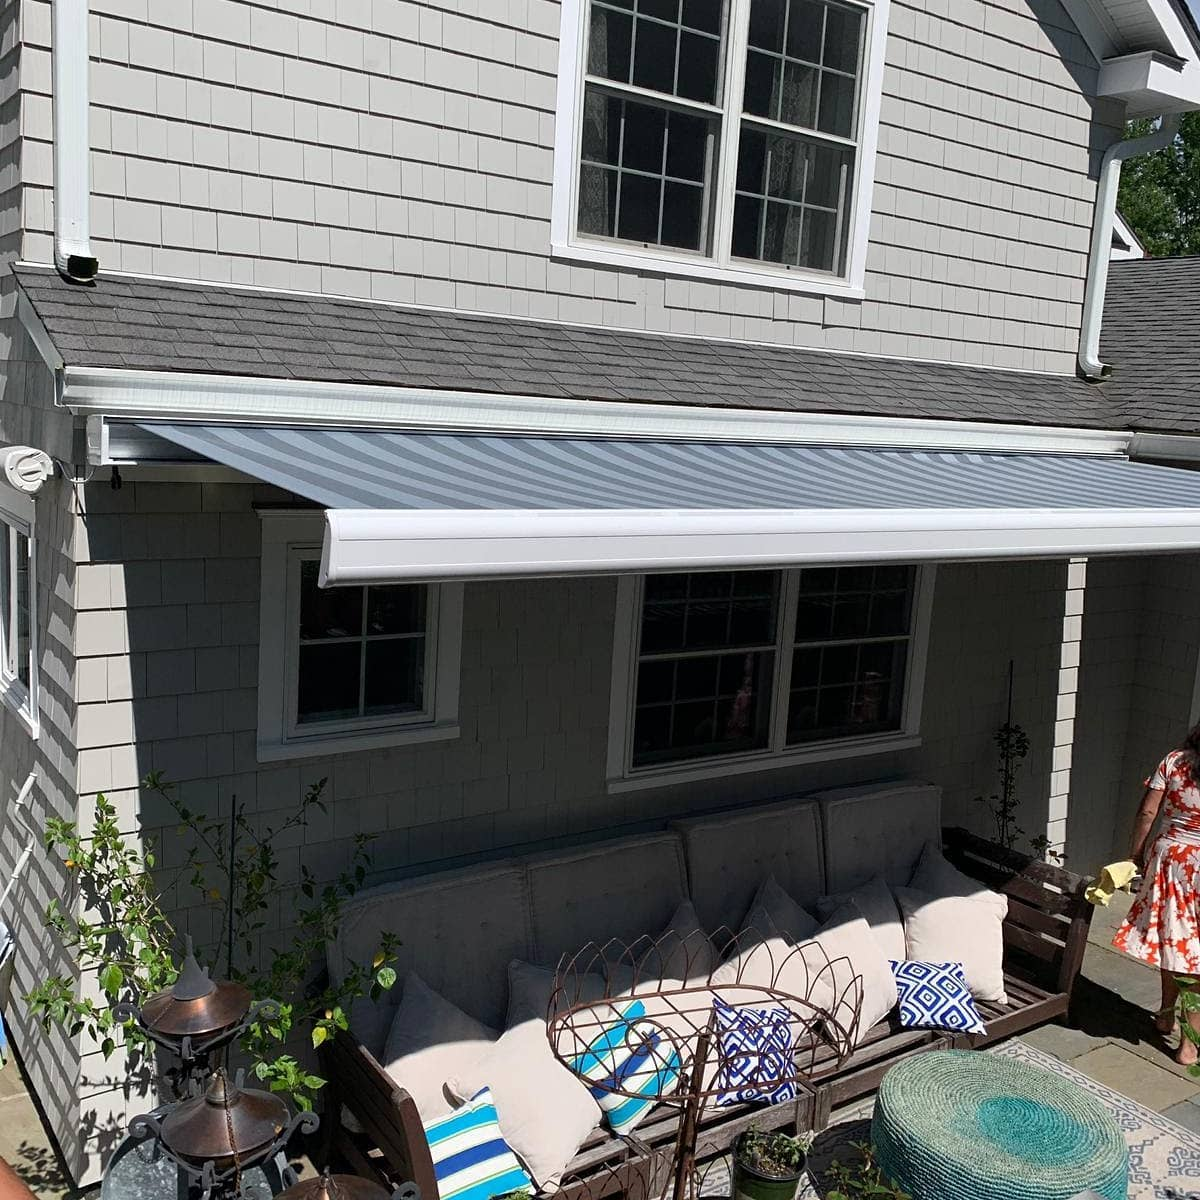 NuImage K300 Retractable Awning